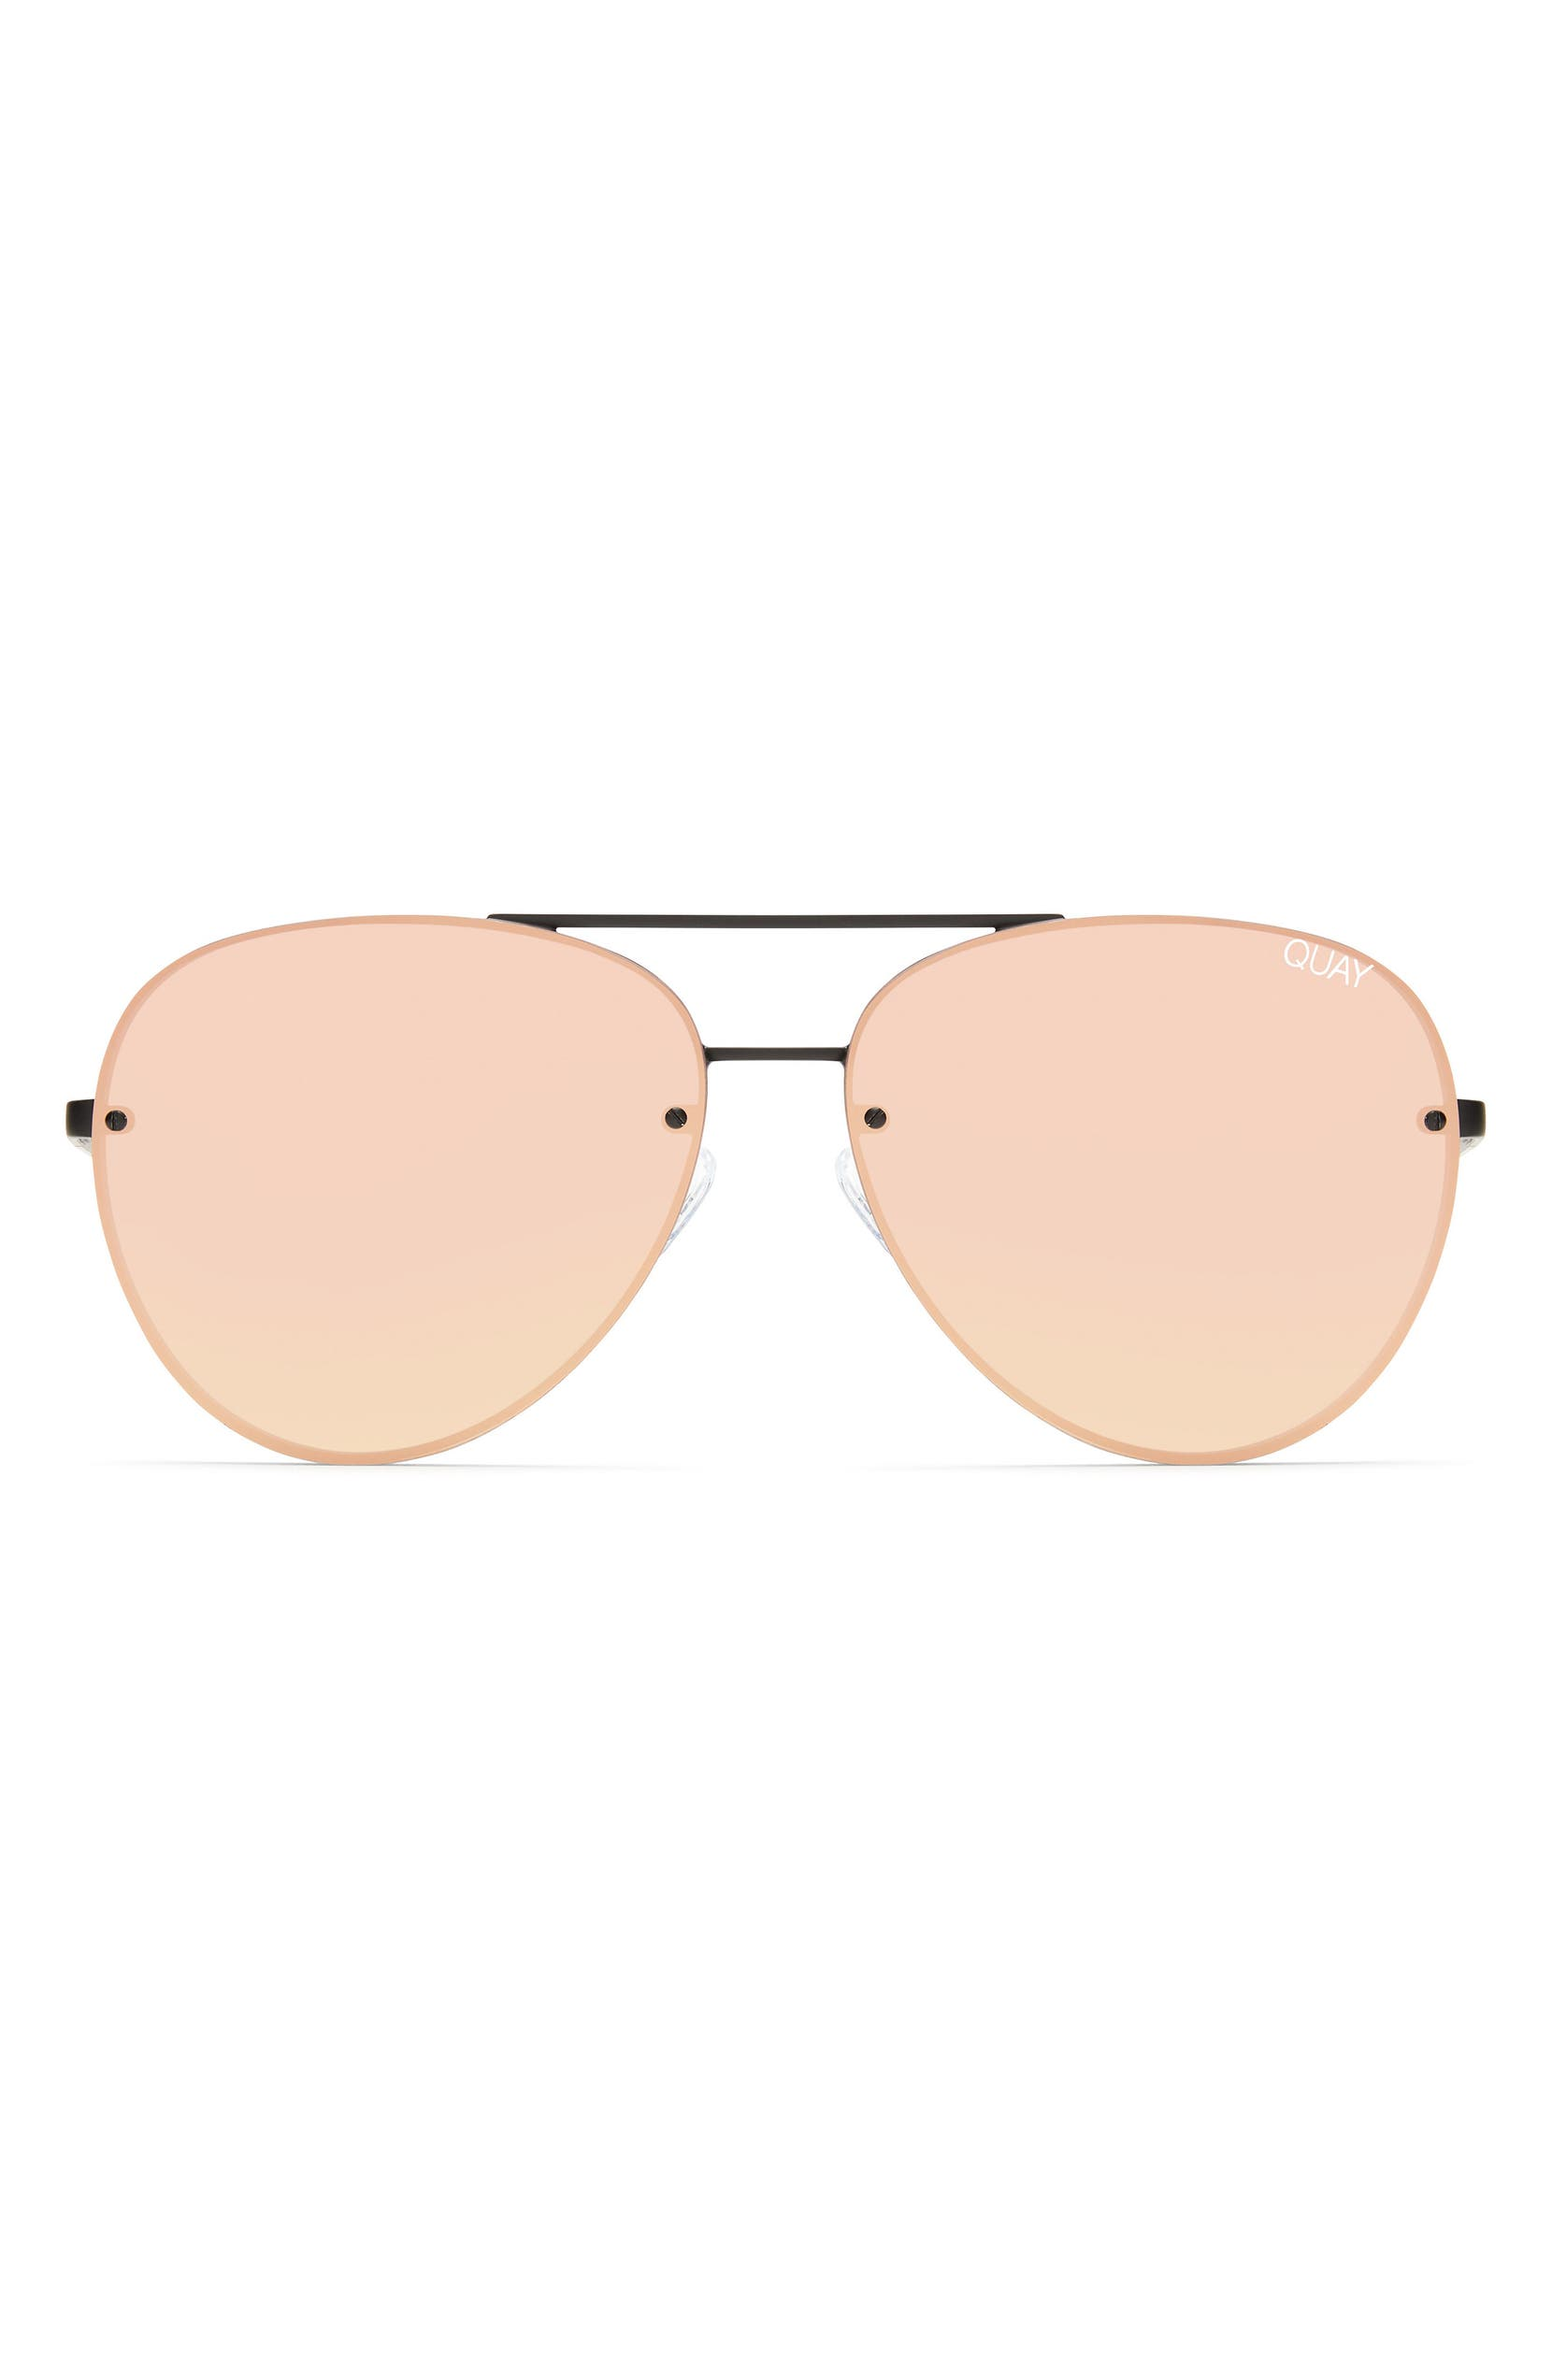 7e81f86933 Quay Australia x Missguided Cool Innit 56mm Aviator Sunglasses ...